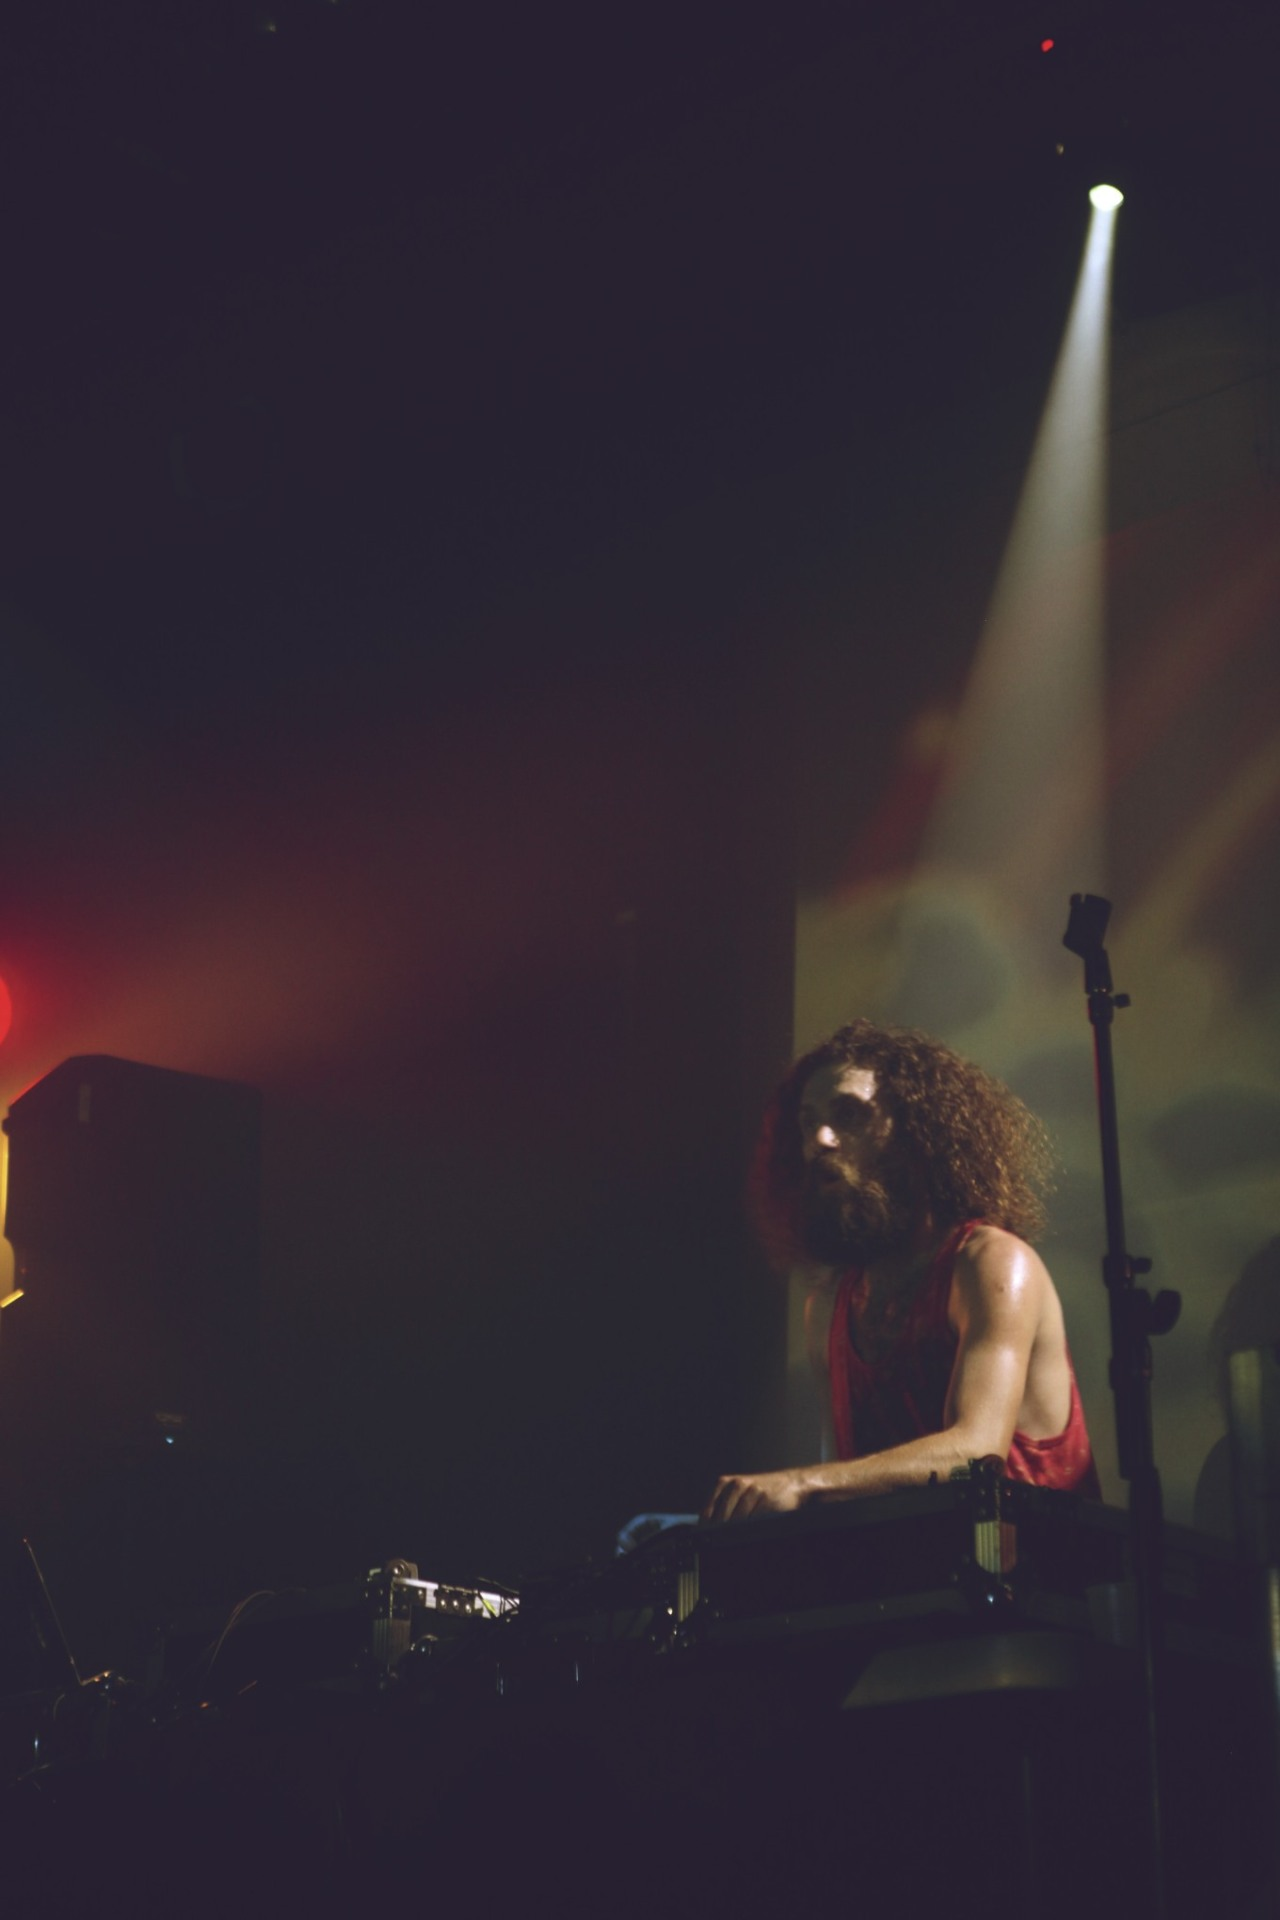 GASLAMPKILLER @ The Echoplex